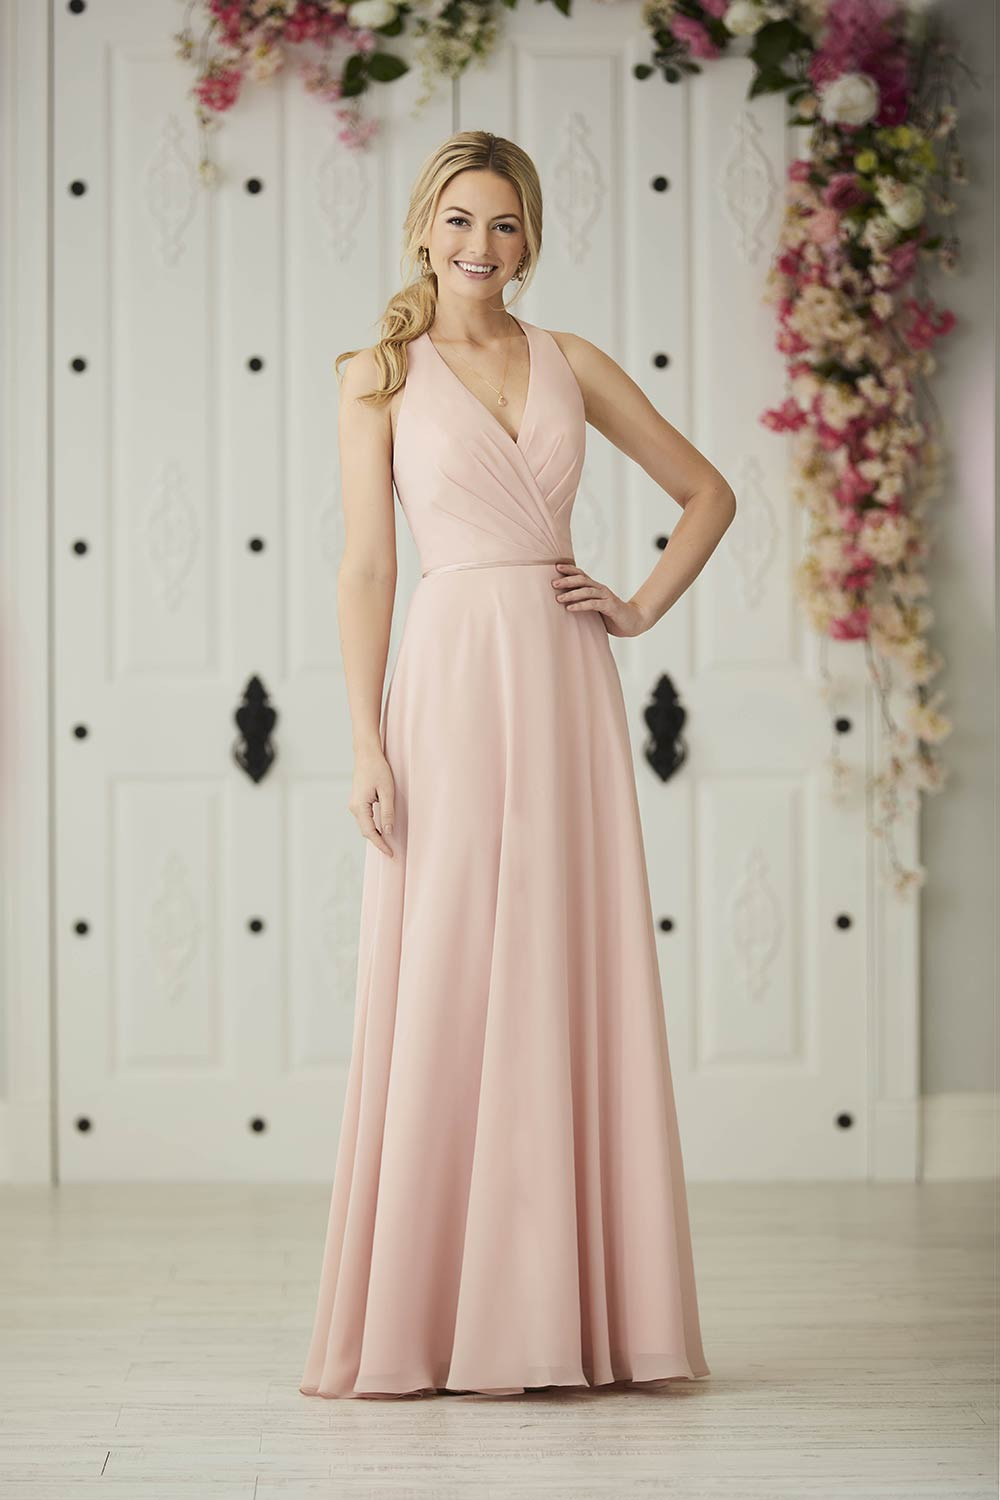 bridesmaid-dresses-jacquelin-bridals-canada-27287